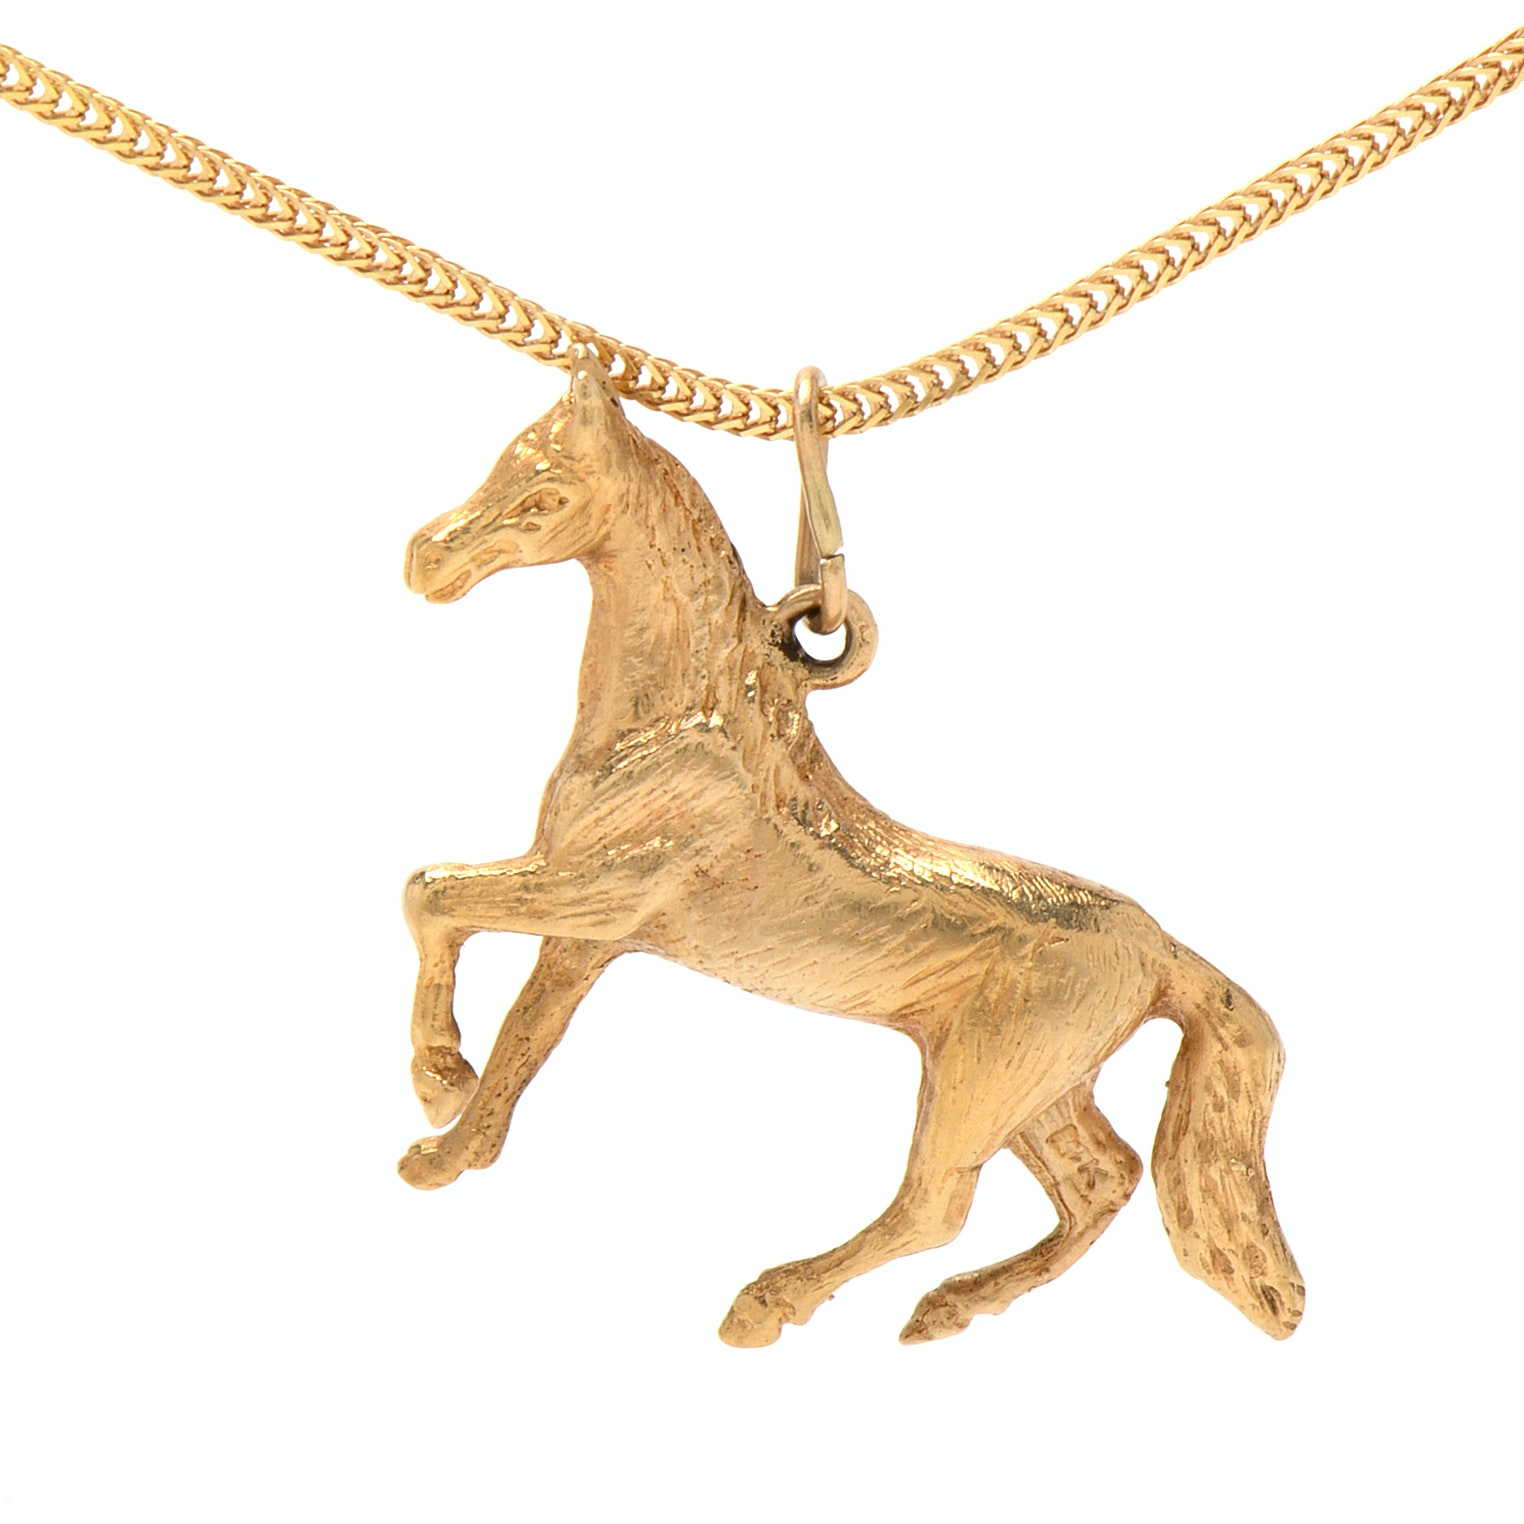 14K Yellow Gold Figural Horse Pendant Necklace